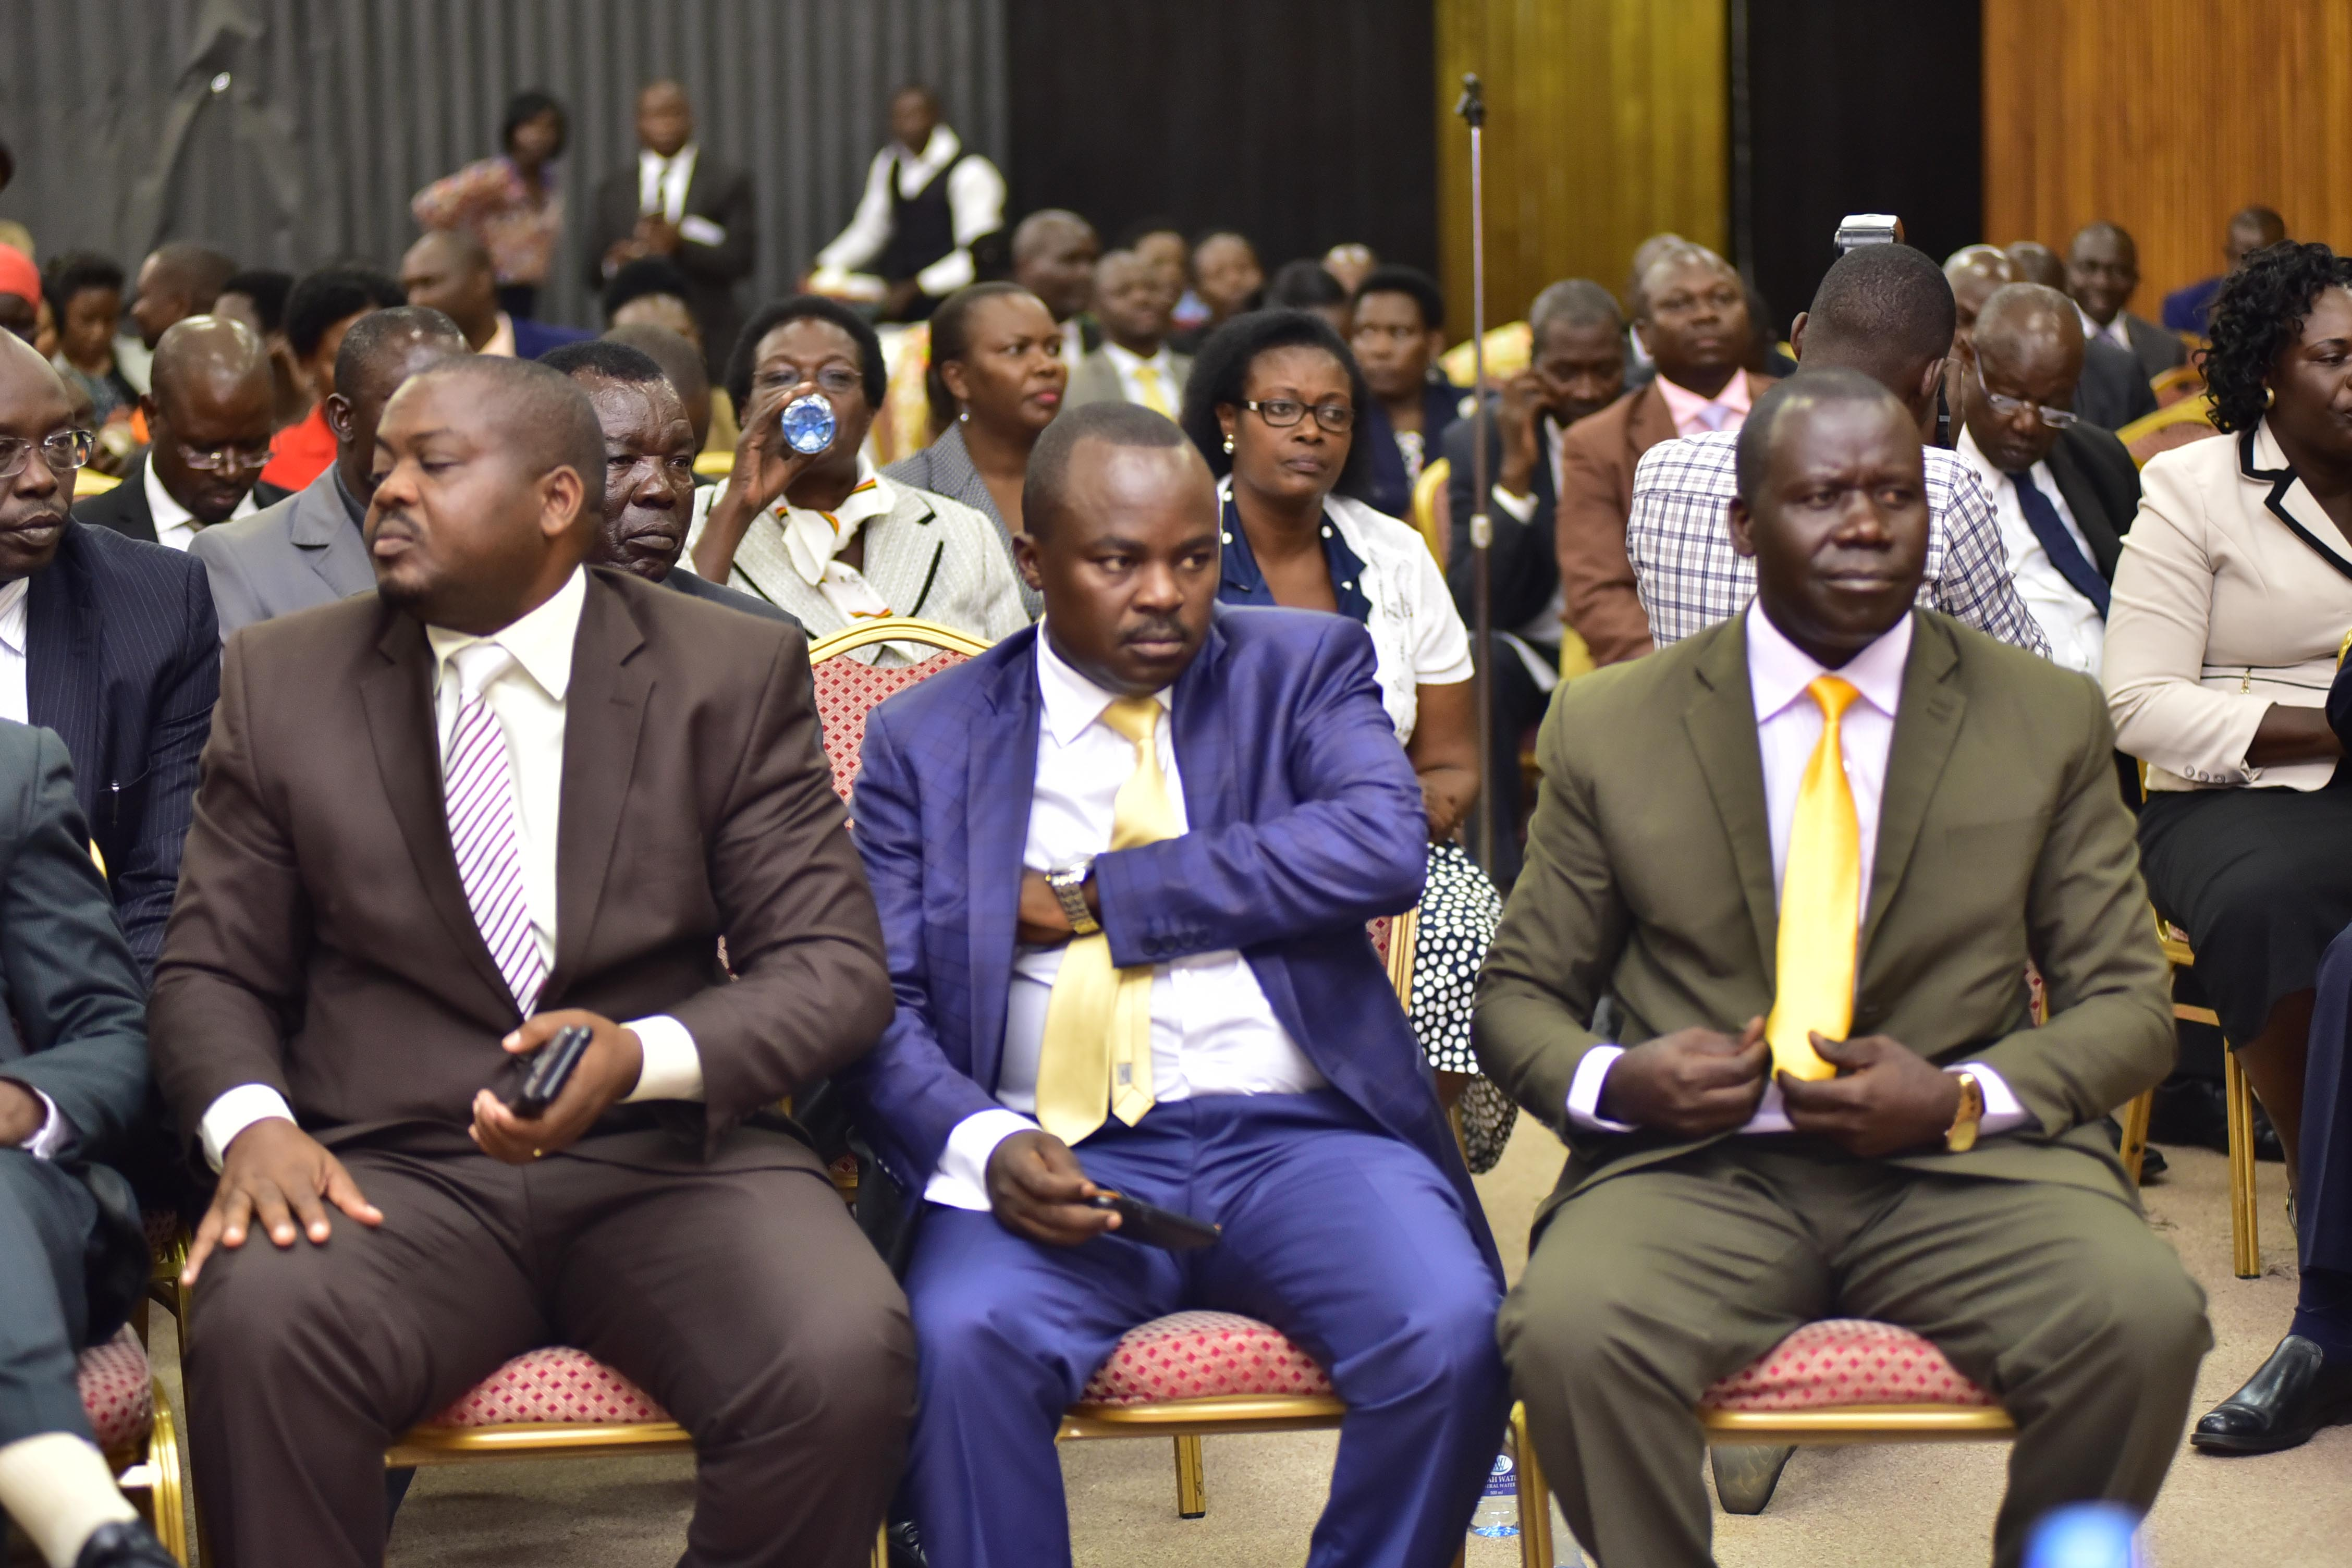 NRM members of Parliament inside the conference hall where they decided to back Museveni's suspected wishes to run for office again in 2021. Photo by Beatrice Leni.